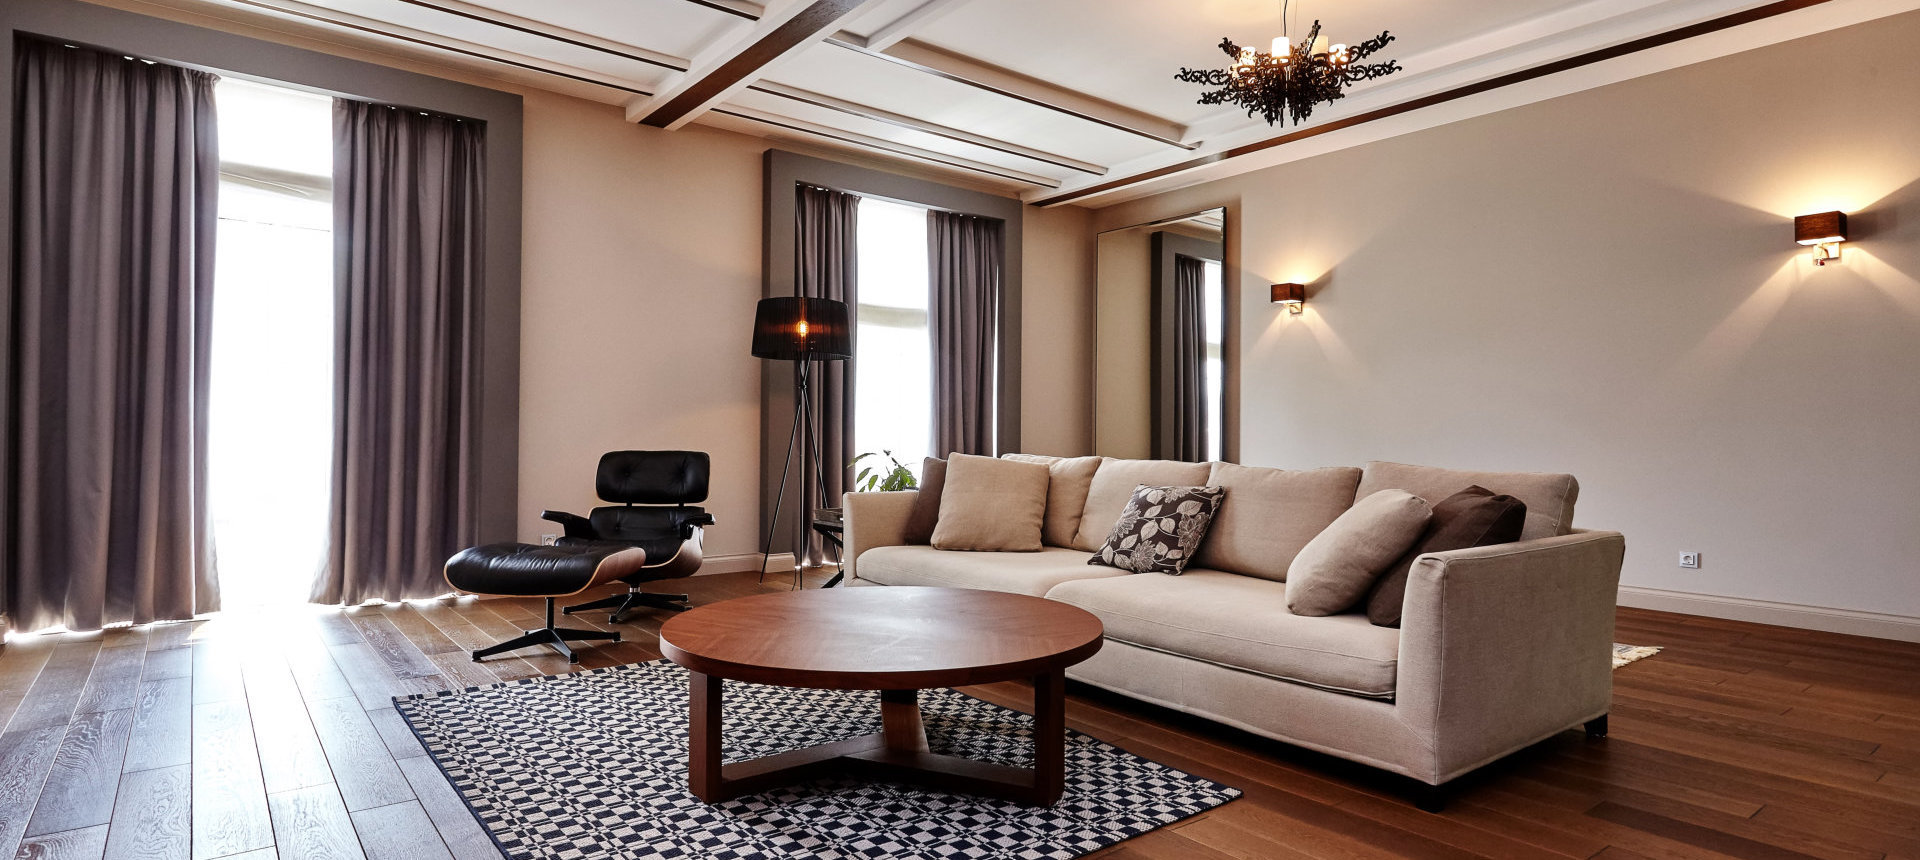 a picture of living room